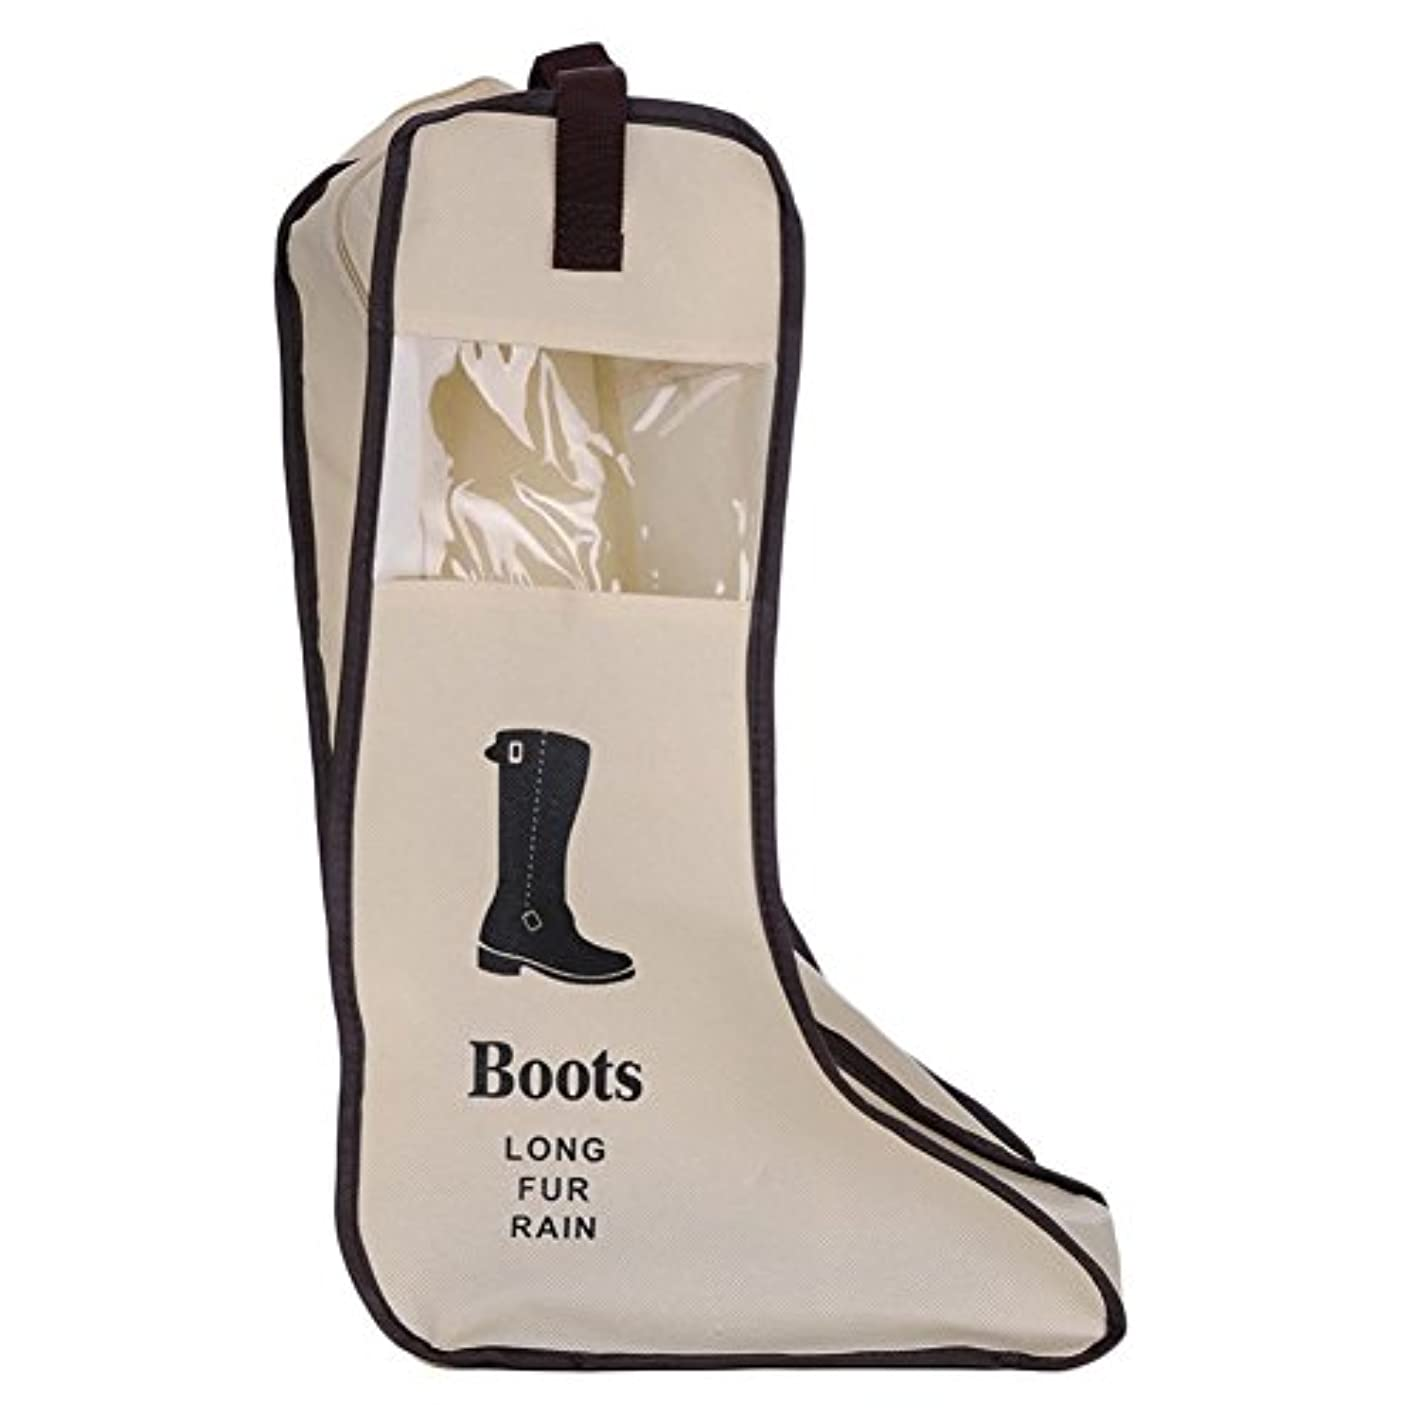 Xigeapg Dustproof Foldable Boots Storage Bag Shoes Organizer Portable Travel Protector Bags Long Boots Cover Container Beige